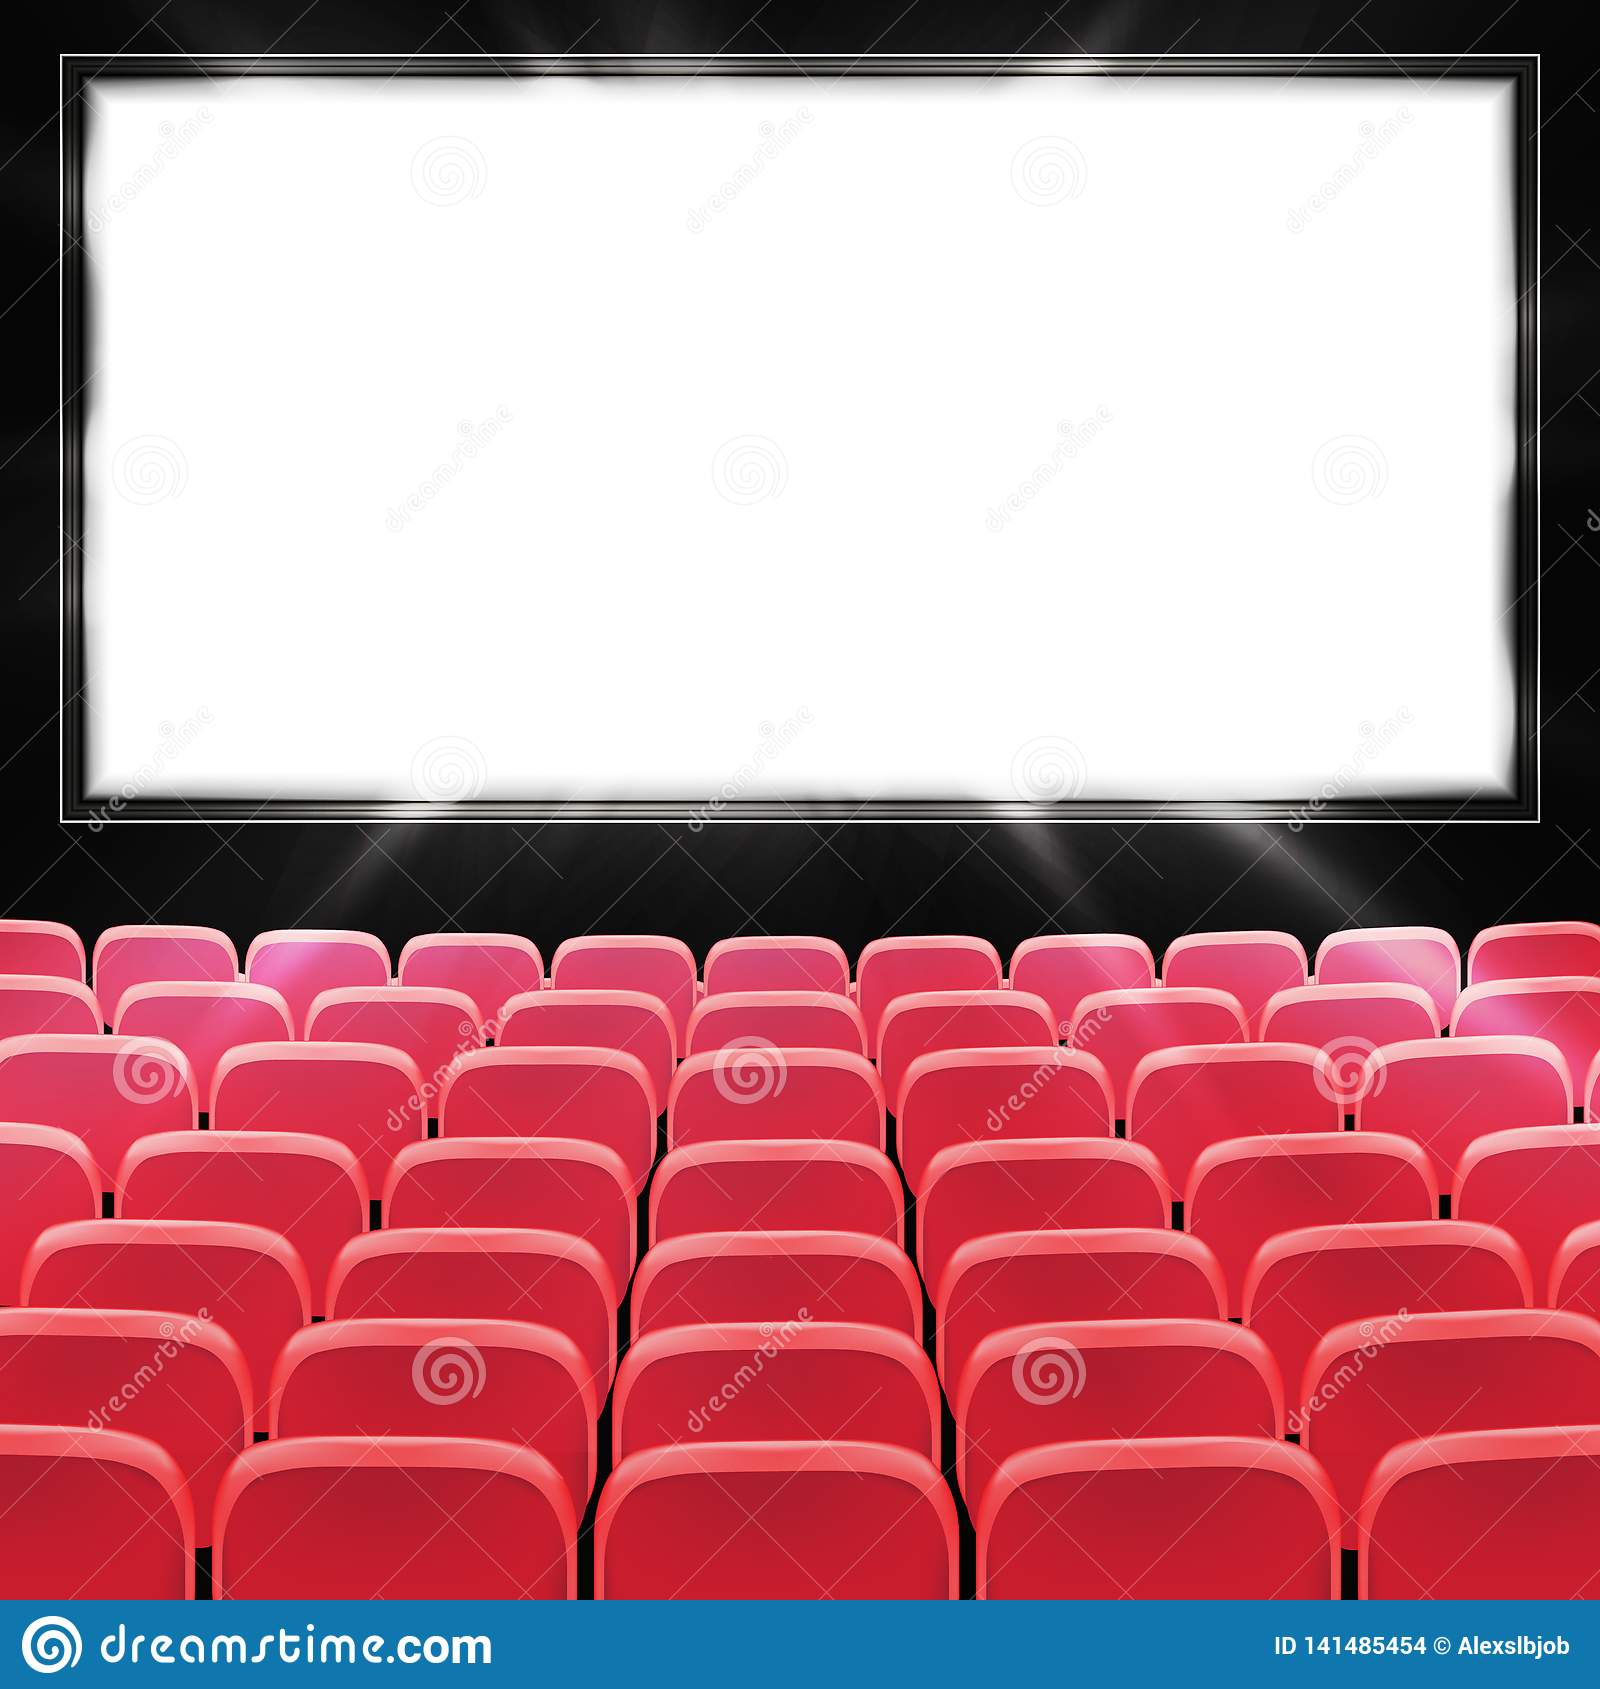 Rows Of Red Cinema Or Theater Seats In Front Of Black Blank Screen Wide Empty Movie Theater Auditorium With Red Seats Vector Stock Illustration Illustration Of Empty Concert 141485454